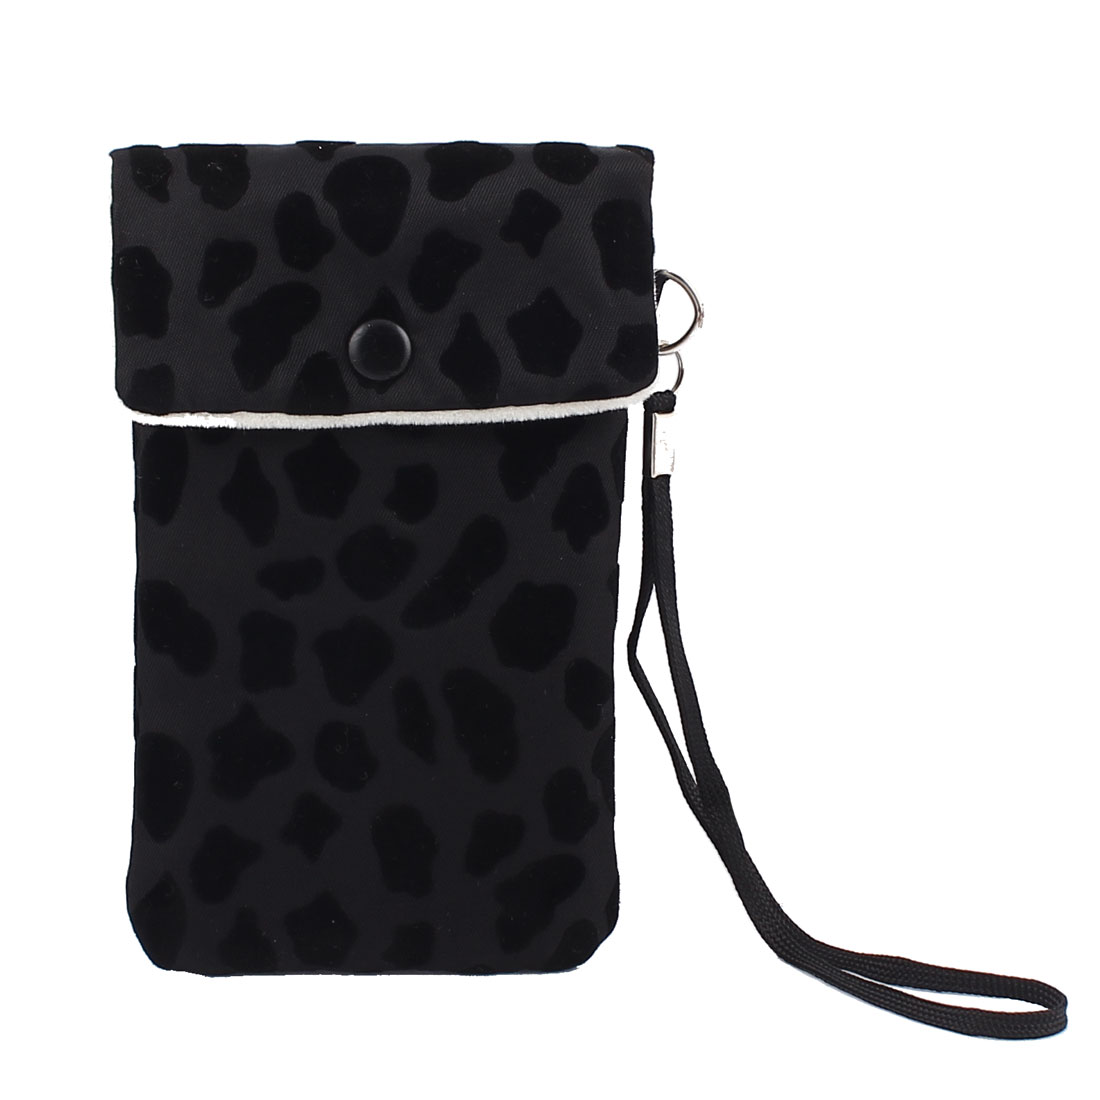 Outdoor Leaopard Prints Nylon Cell Phone Pouch Bag Mobile Case Black